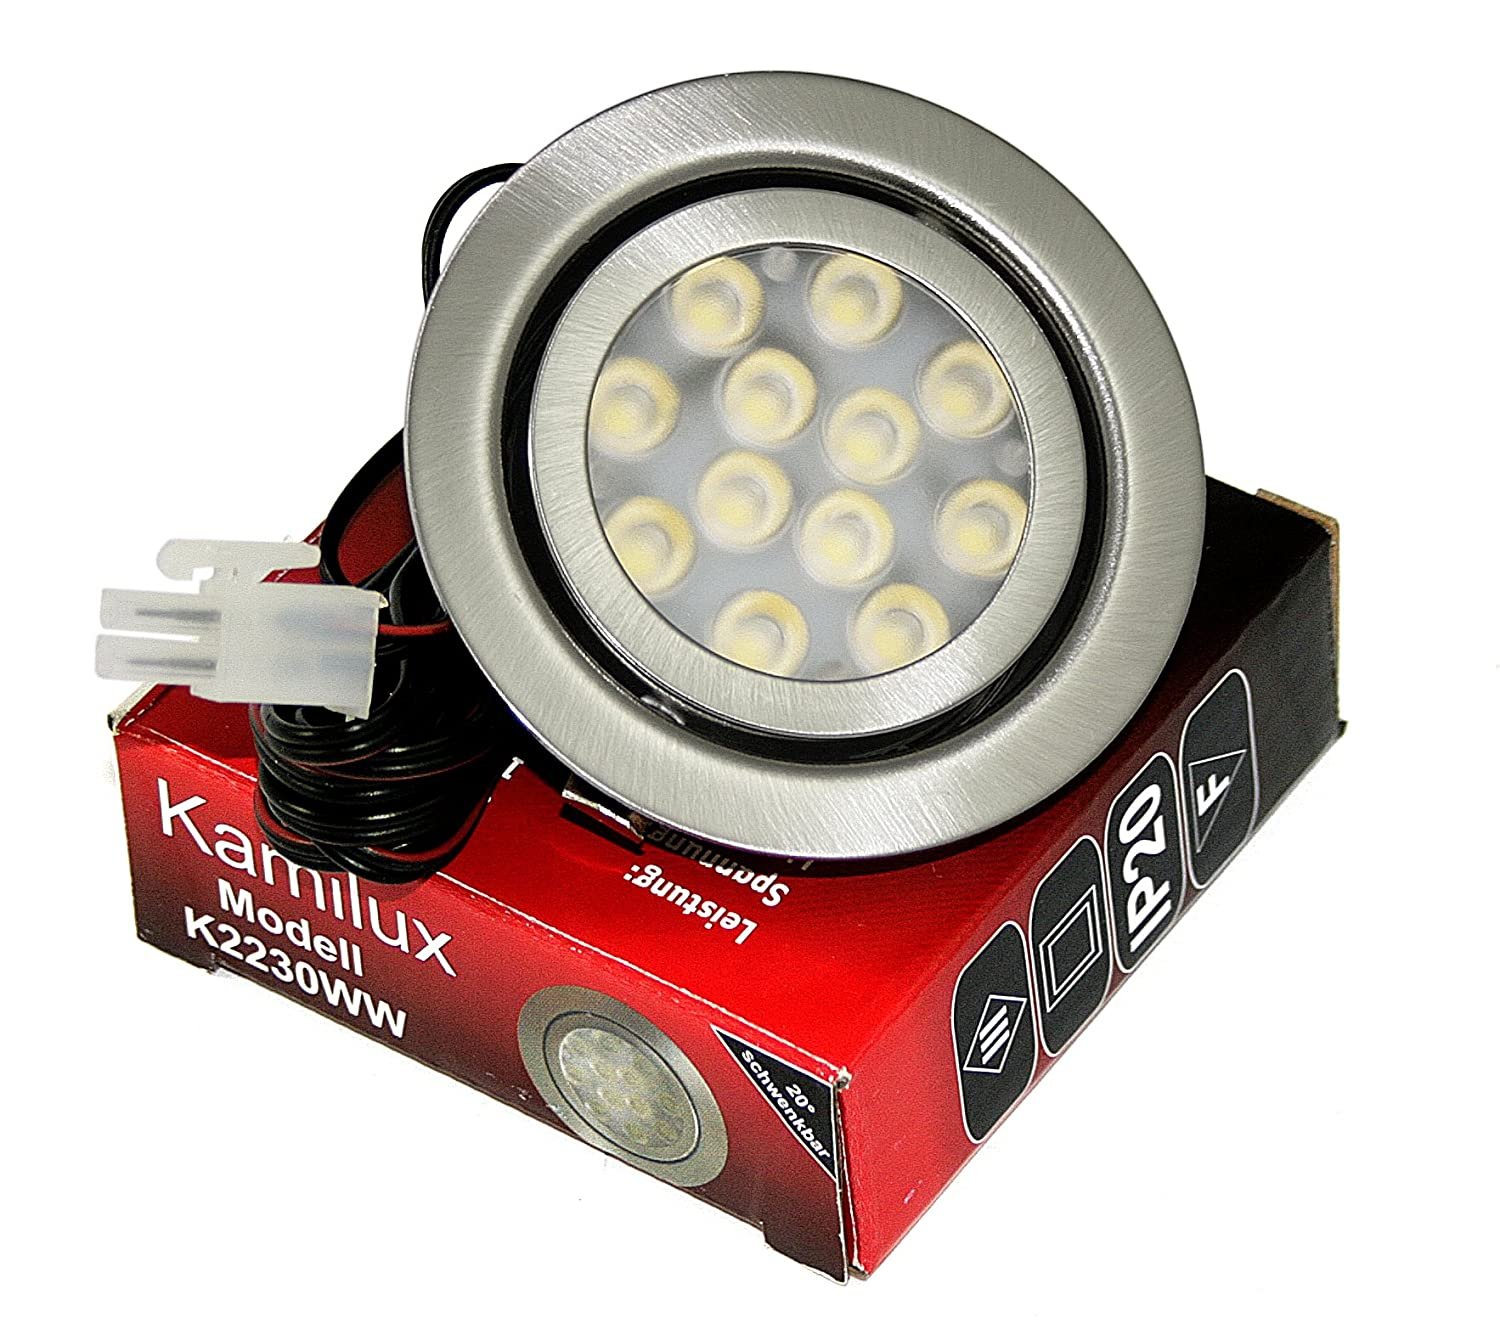 Focos de cocina led beautiful tipos de downlight led y - Downlight cocina led ...